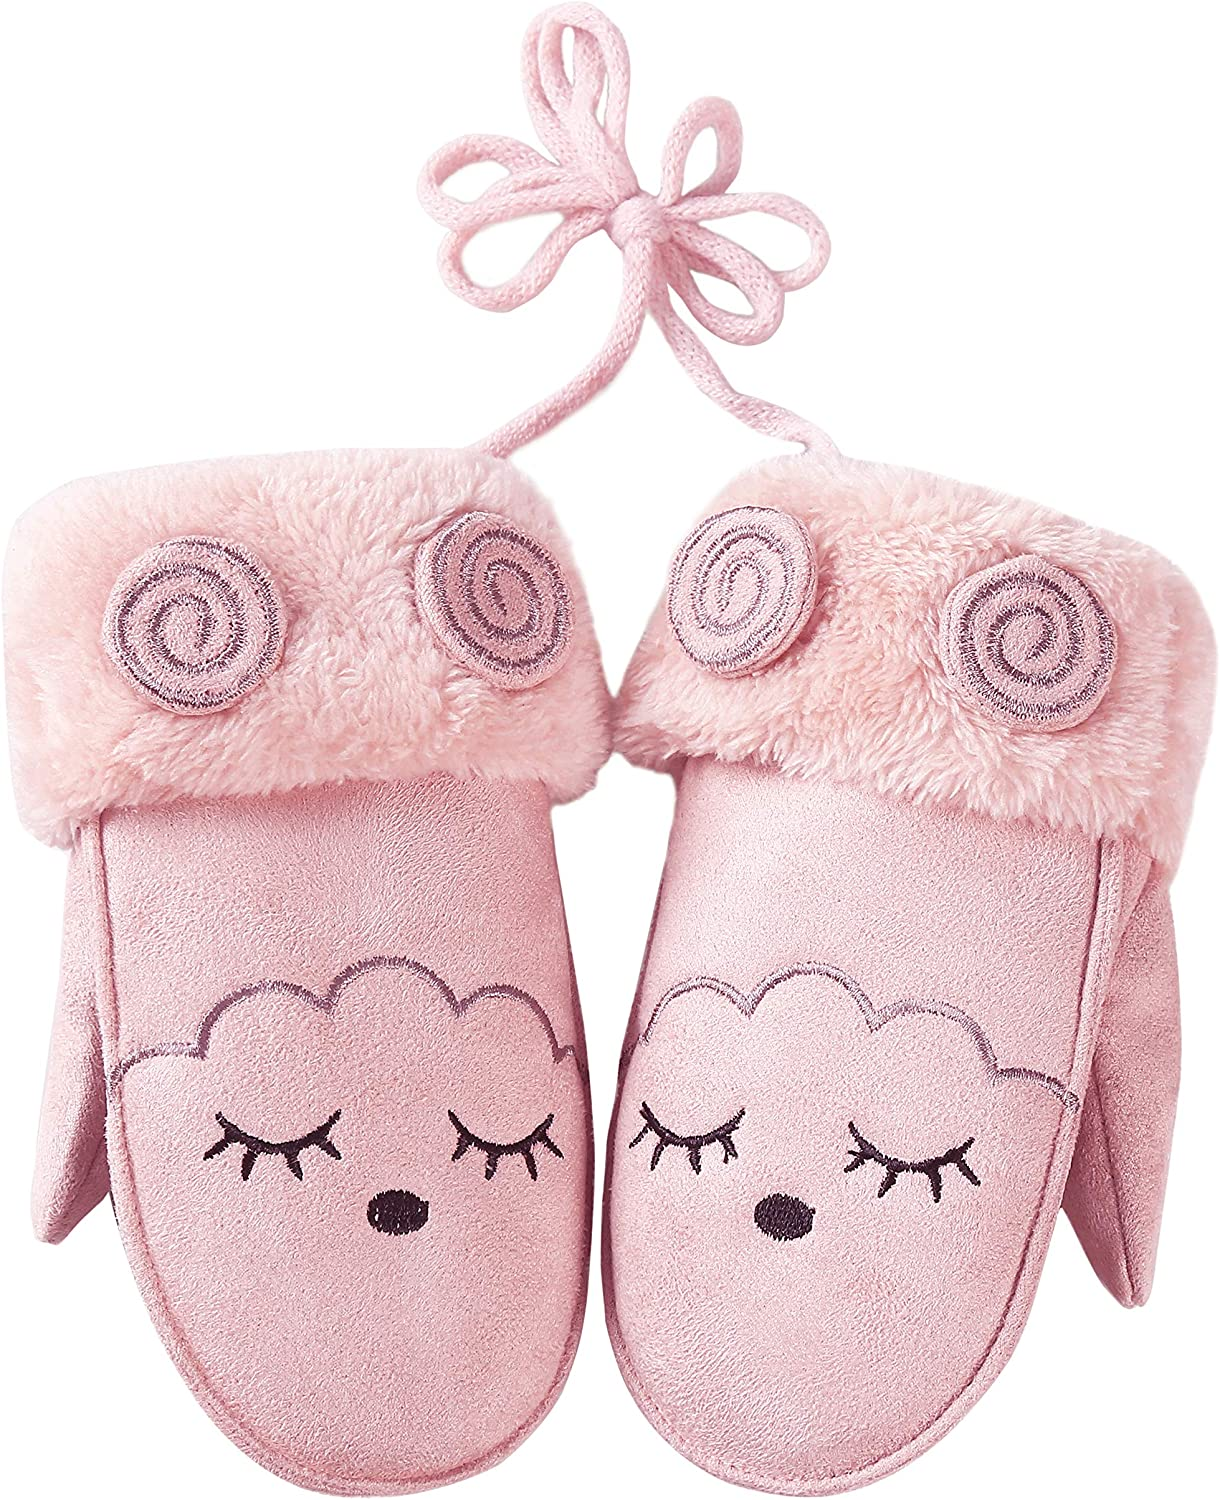 Toddler Kids Girls Boys Winter Faux Suede Mittens Cute Warm Fleece Lined Gloves with String